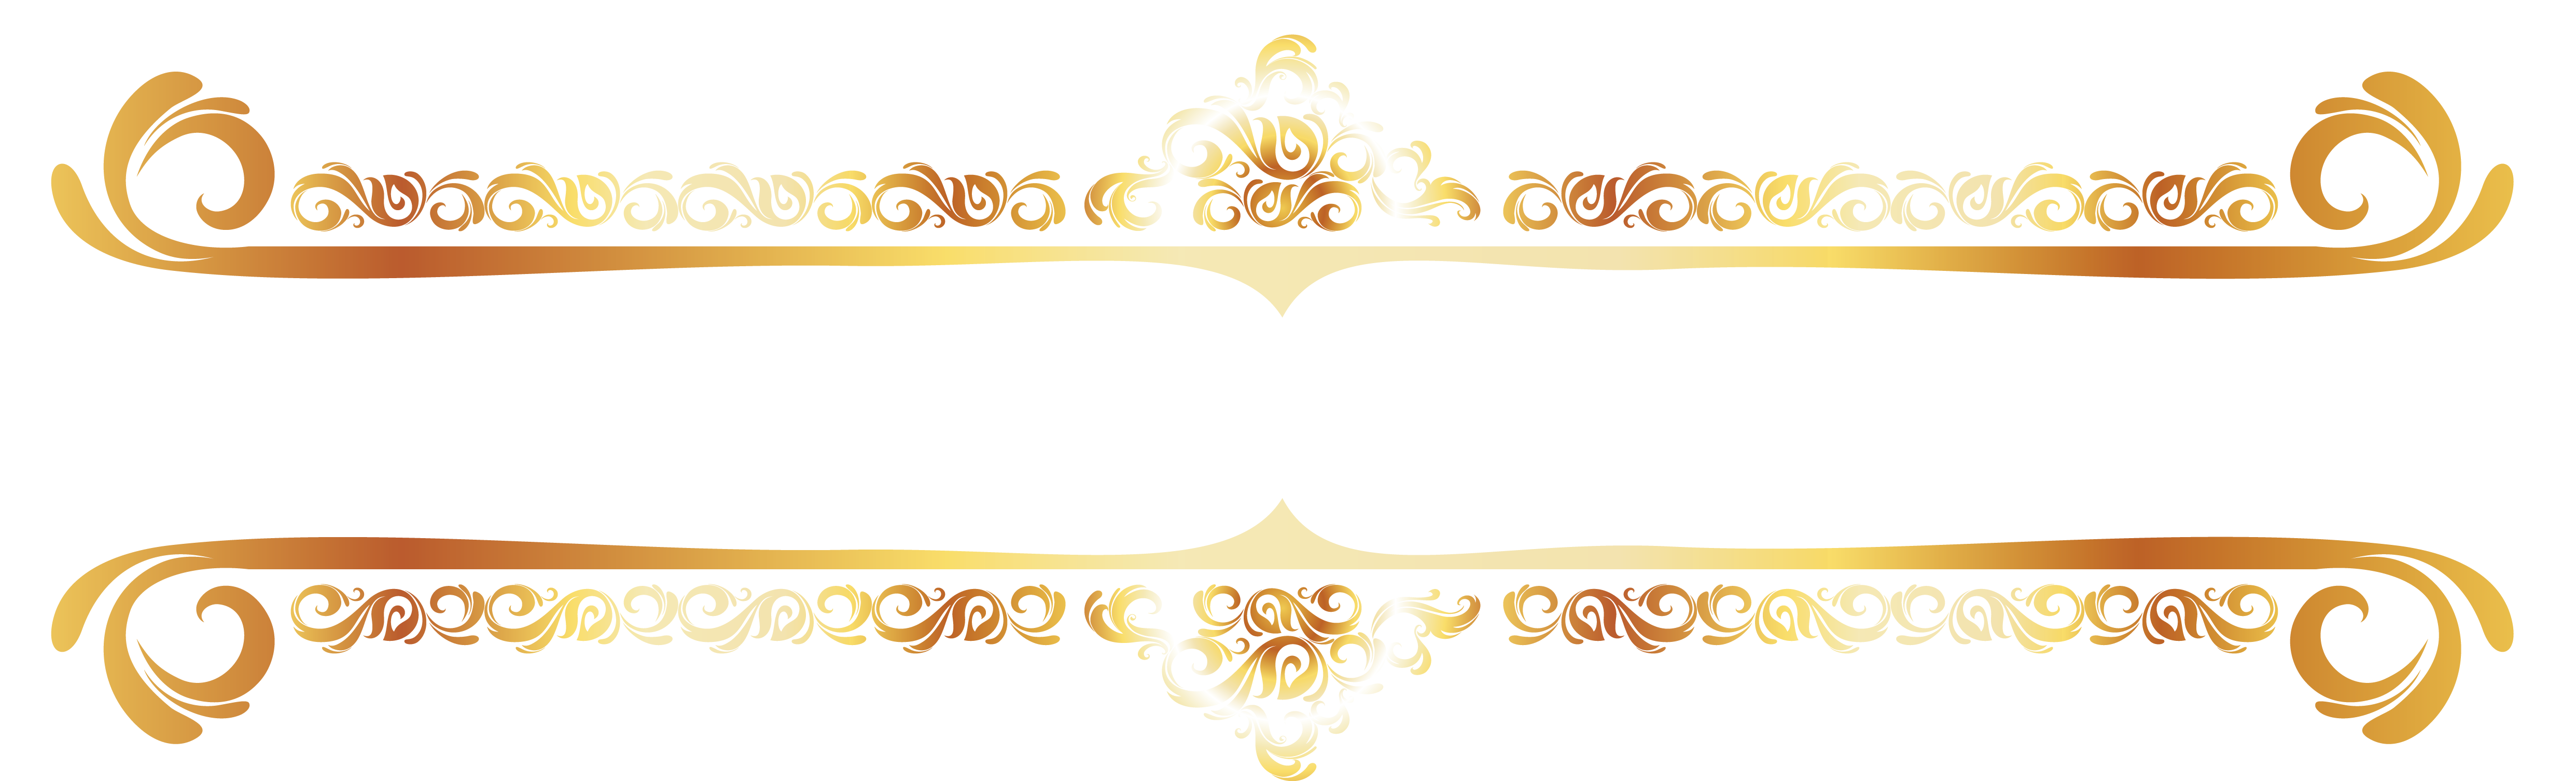 Line border png. Brand yellow pattern continental